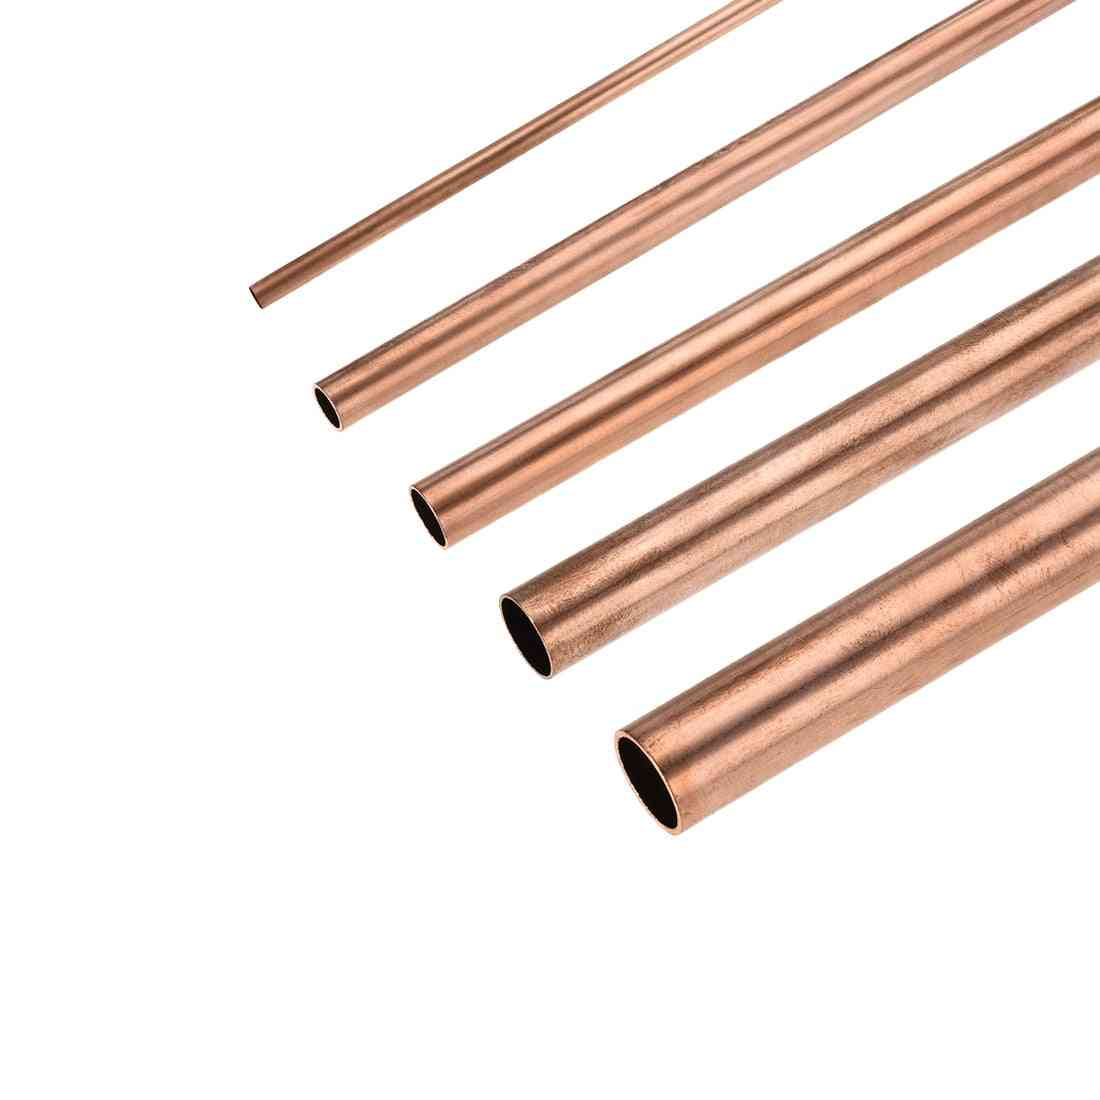 Copper Round Tube- Hollow Straight Pipe With Smooth Surface